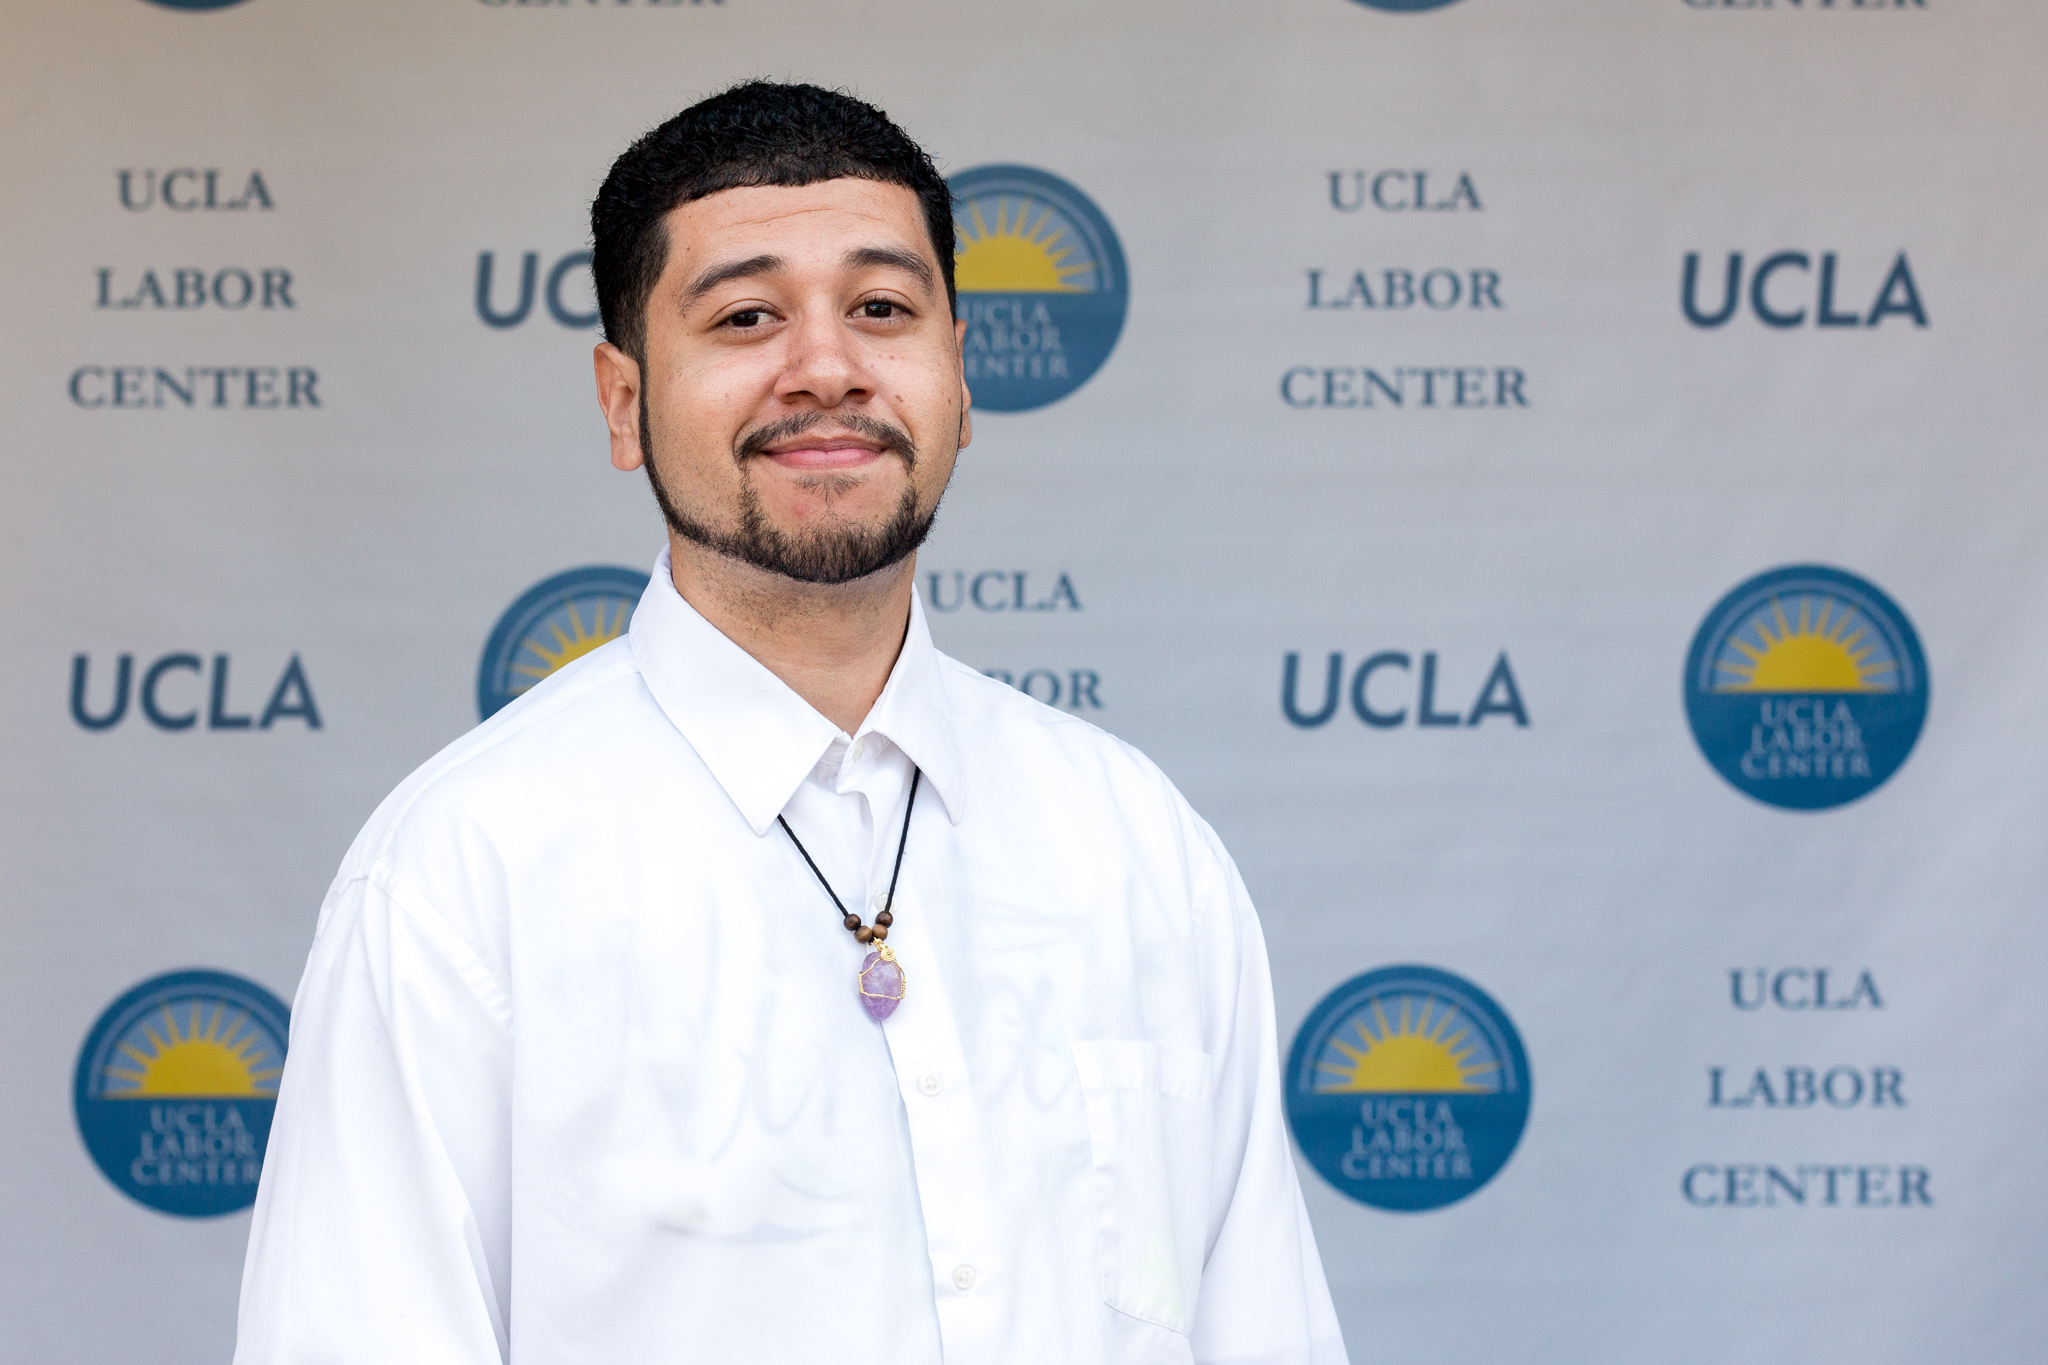 HEALTH AMBASSADOR FELLOW SPOTLIGHT: JULIO VARGAS